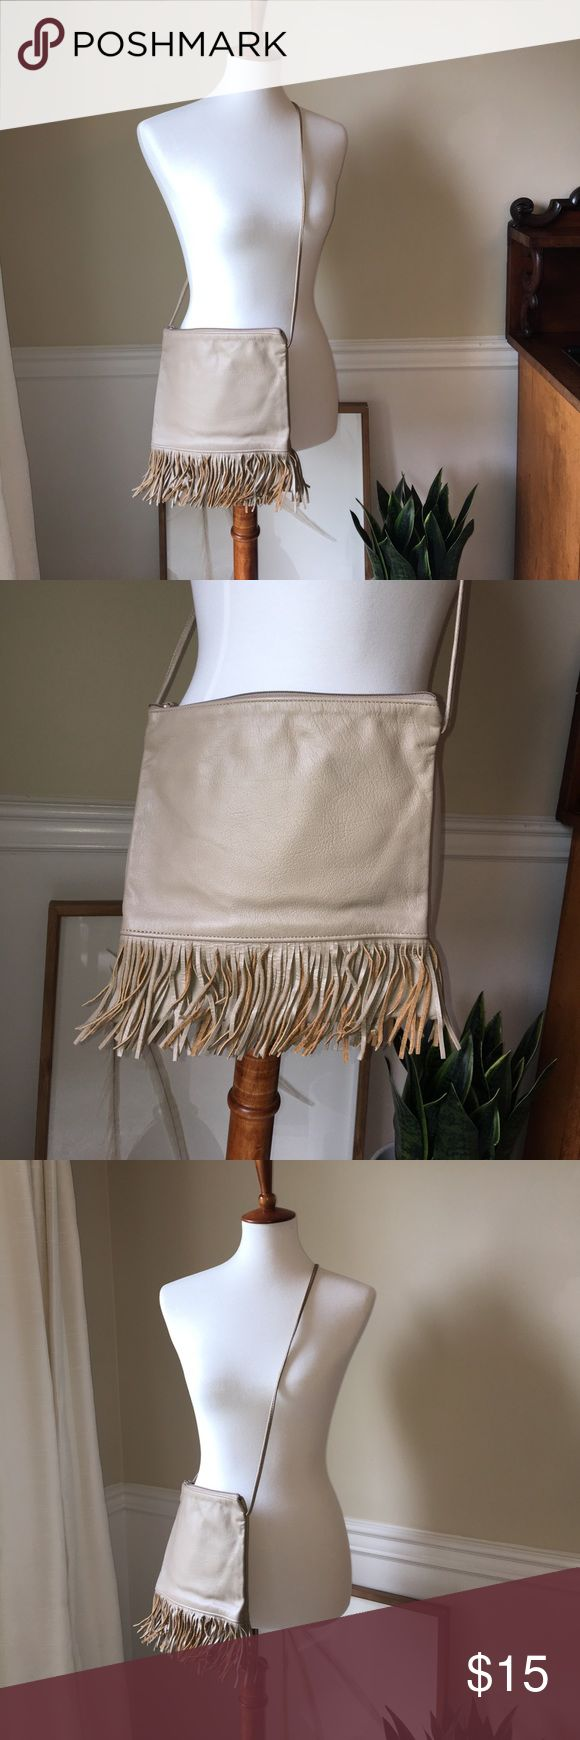 Real leather cross body bag with fringe This tan/ taupe bag is the perfect size for any music festival! It's real leather, has amazing fringe all around the bottom of the bag AND zips shut! The strap is knotted to make it shorter but you can have it untied as well. Happy shopping! no tag Bags Crossbody Bags